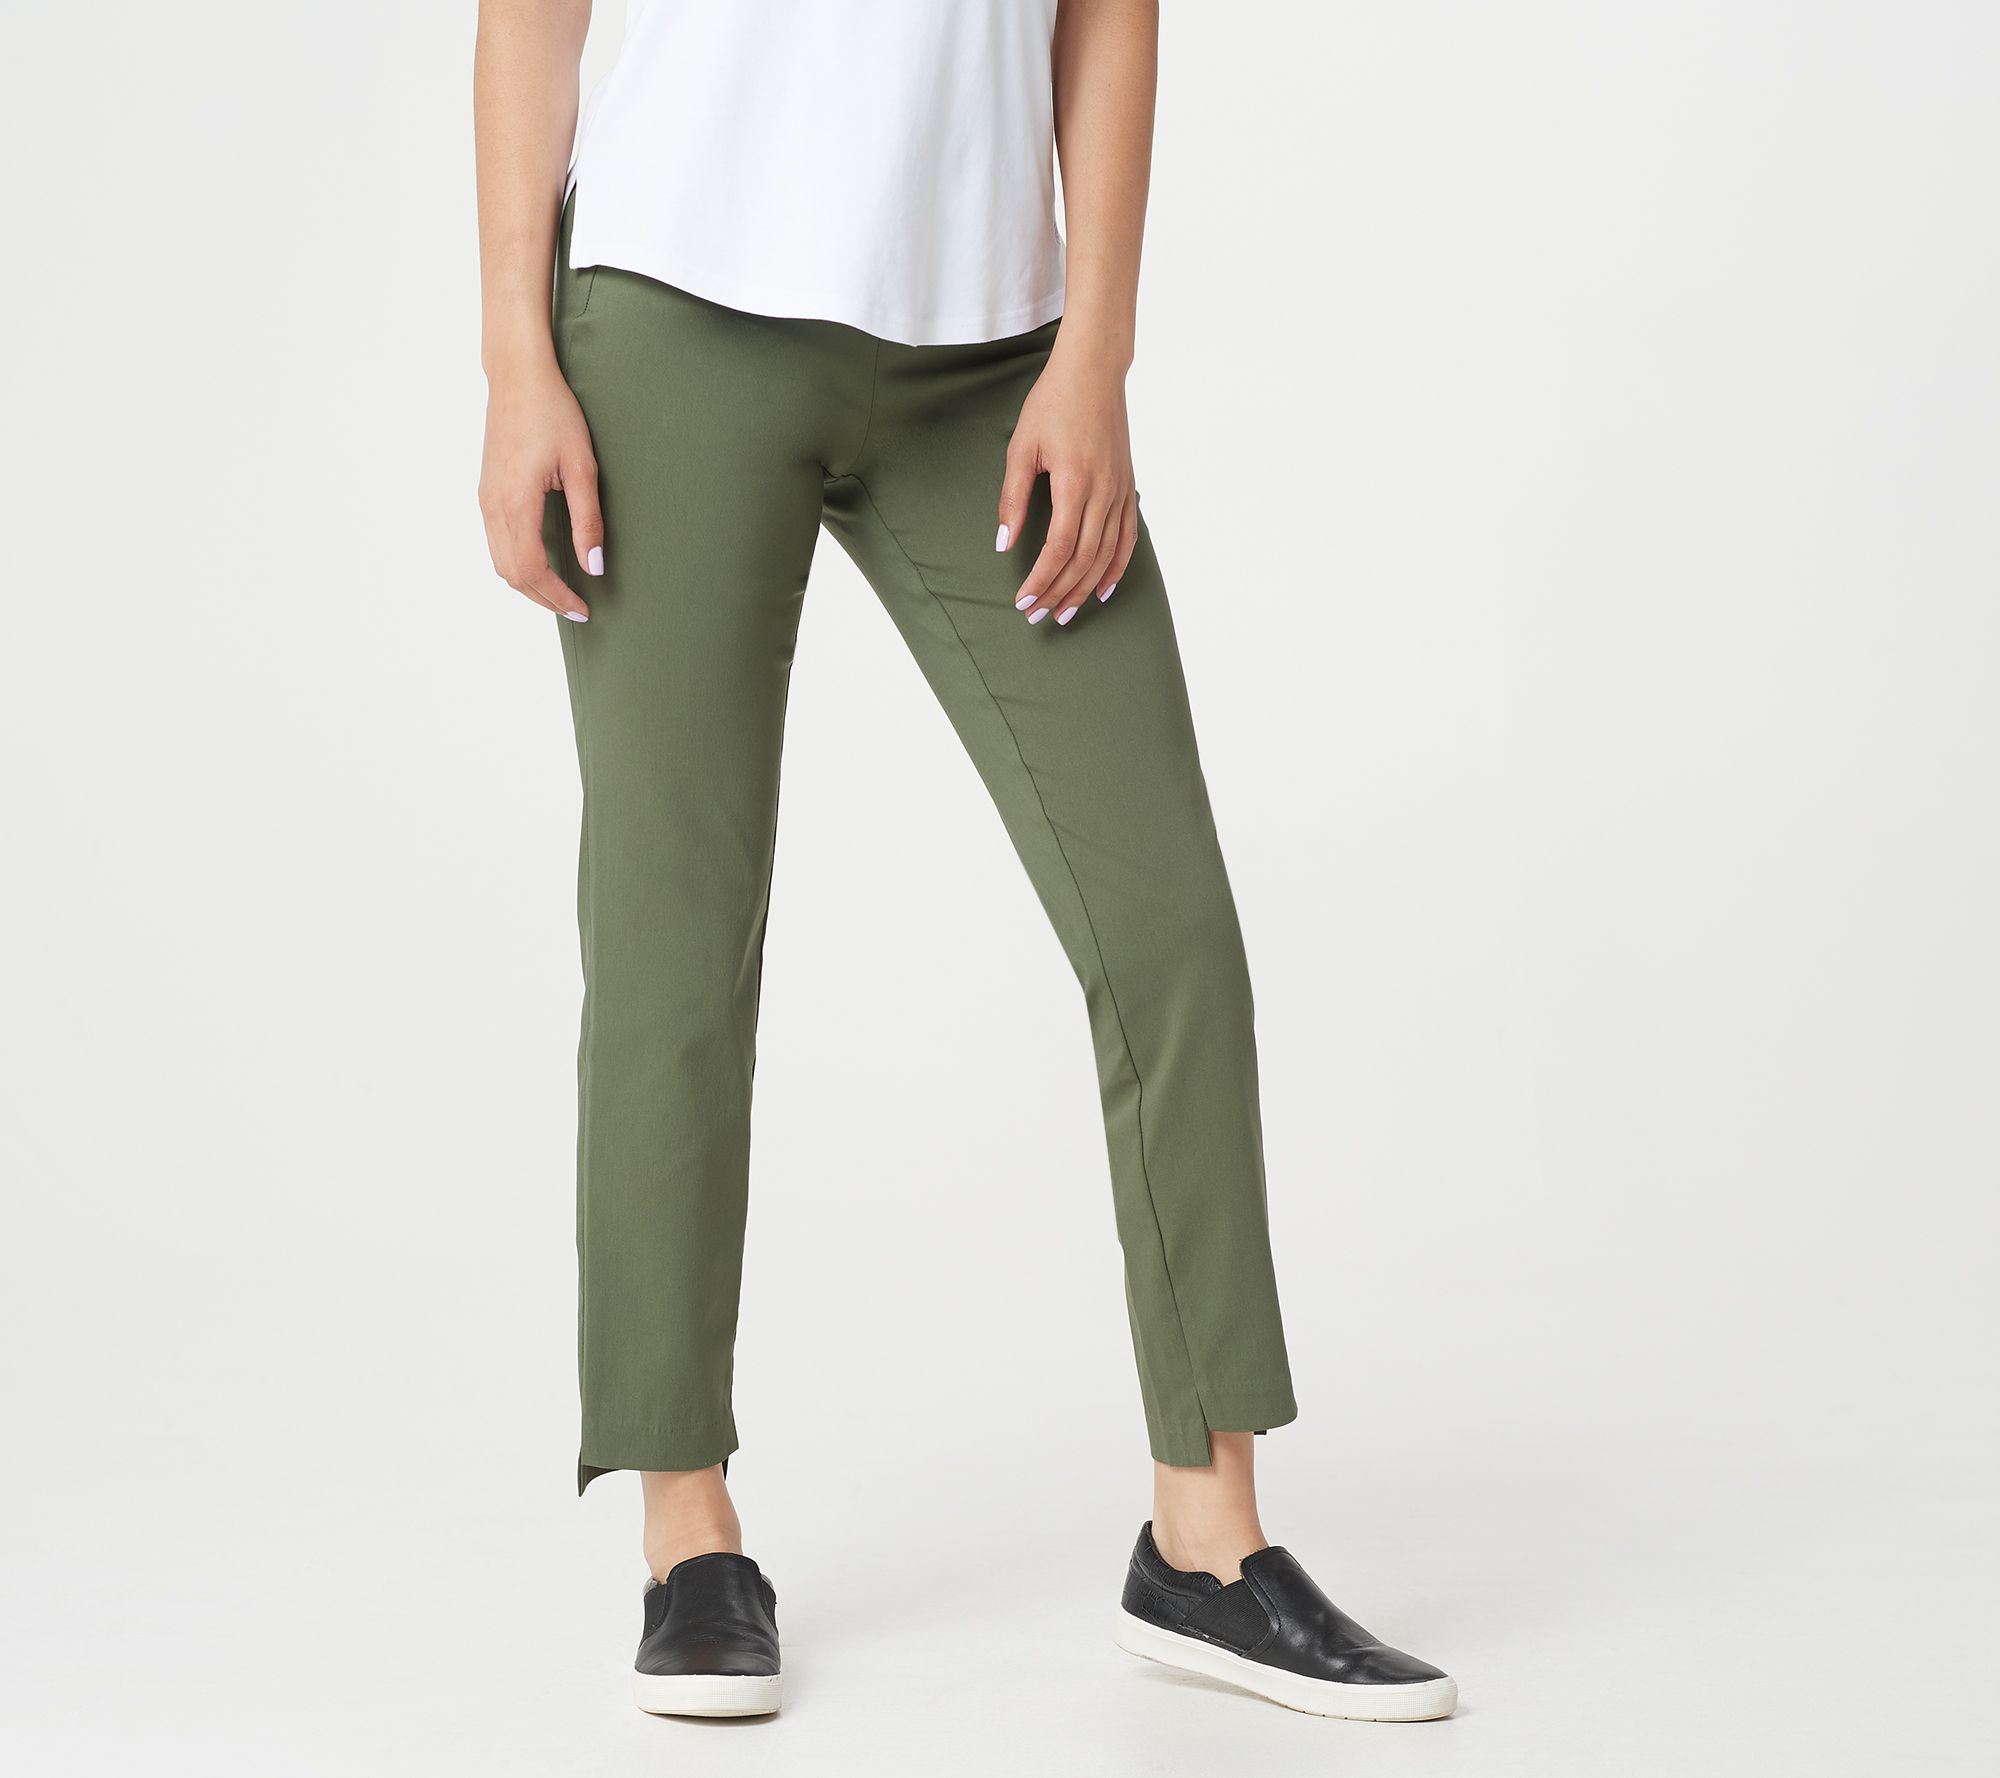 Martha Stewart Petite Stretch Twill Pull-On Ankle Pants Ink Blue 14P NEW A307744